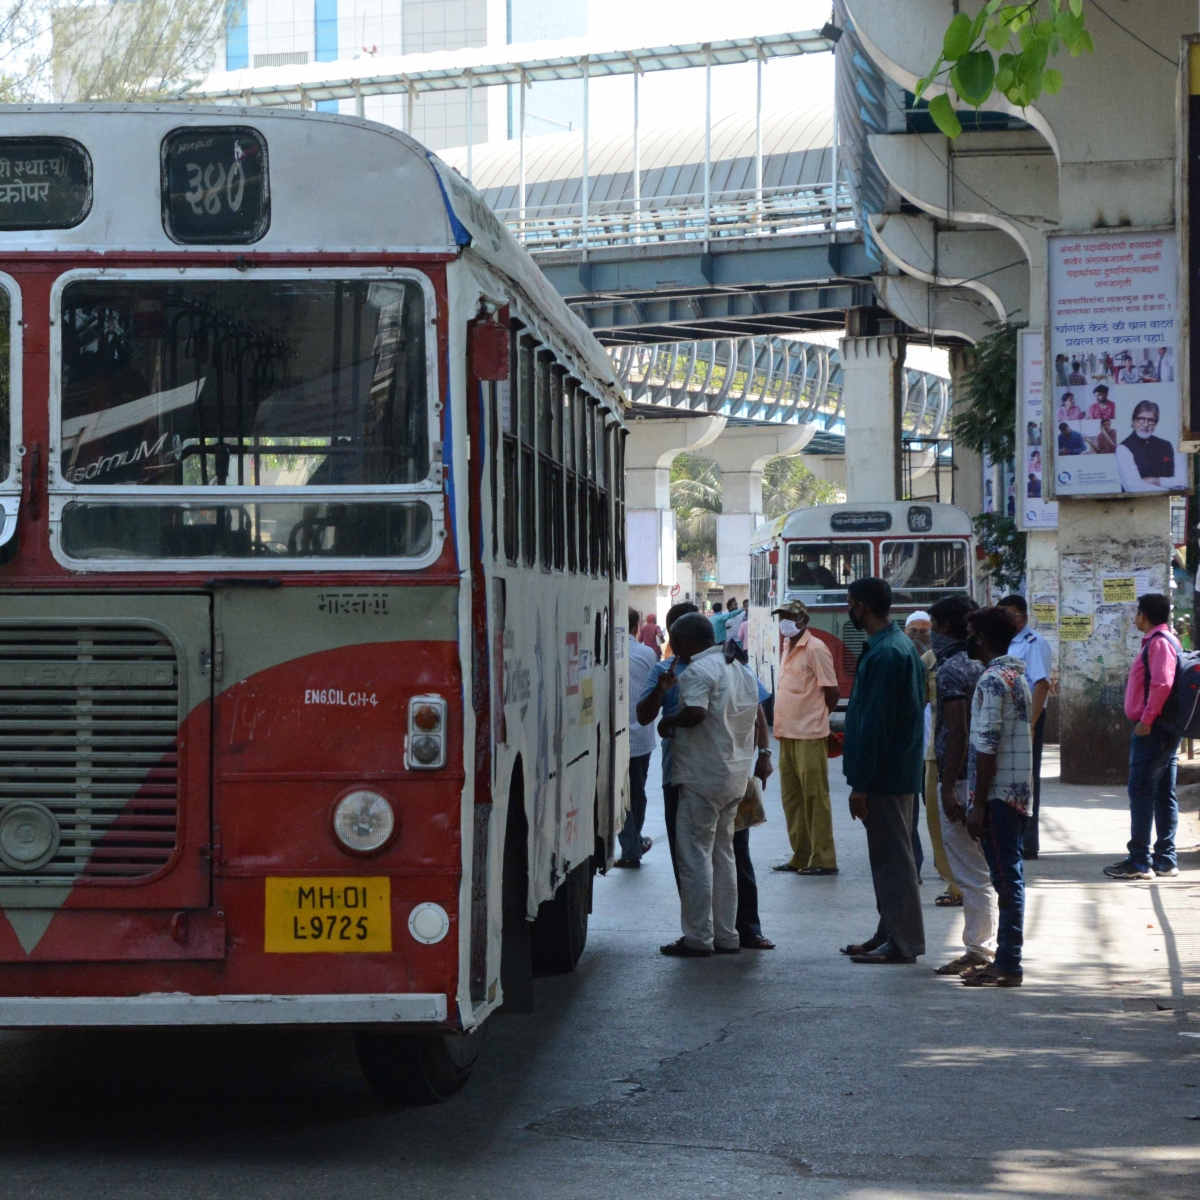 Coronavirus in Mumbai: BEST to continue bus services for essential service personnel